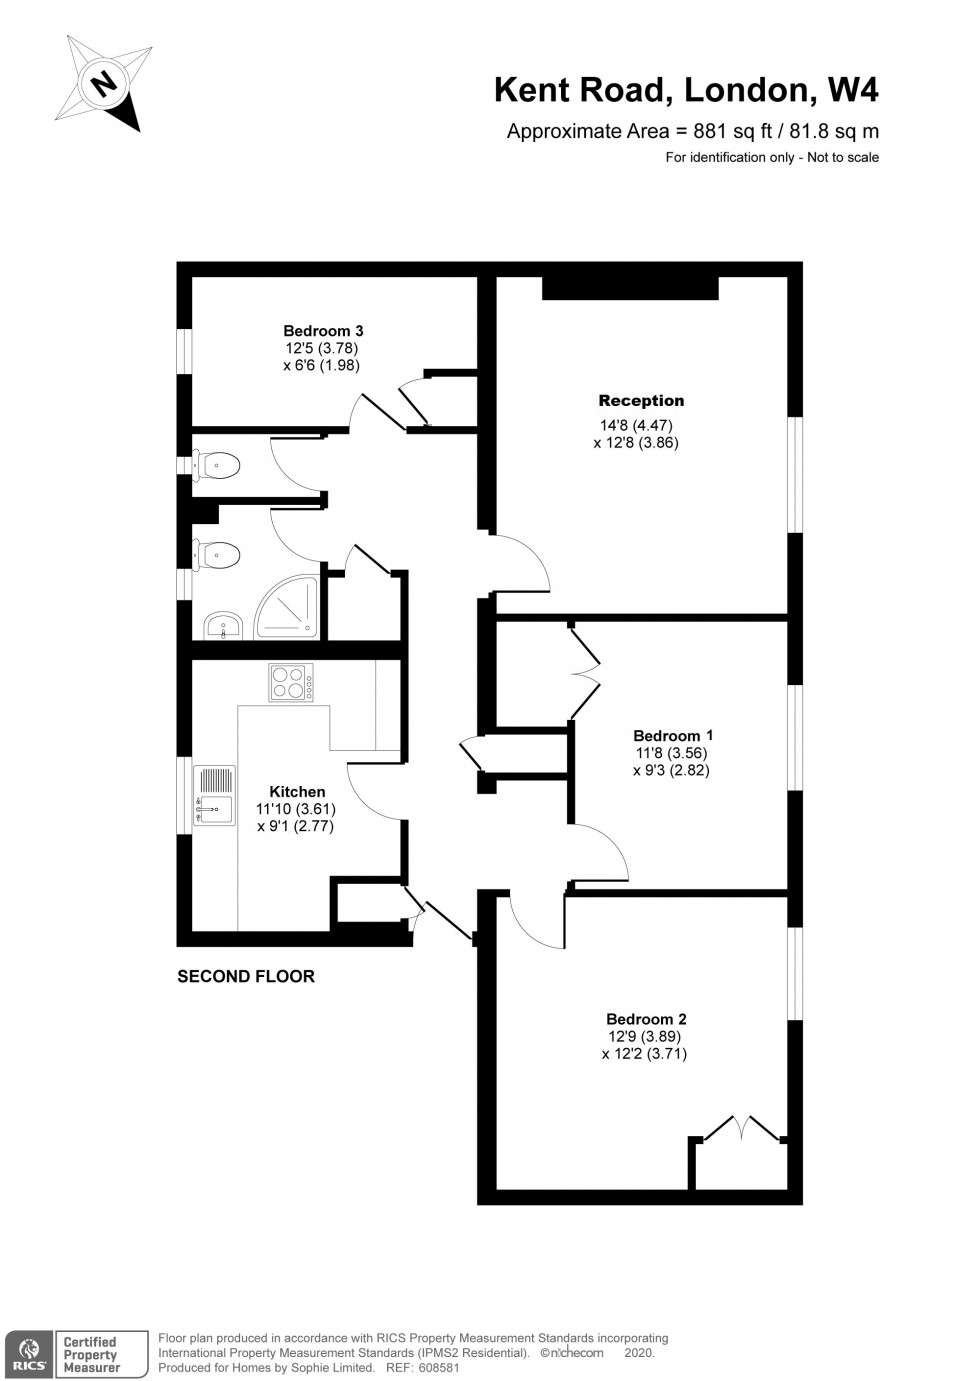 Floorplan for Kent Road, Chiswick